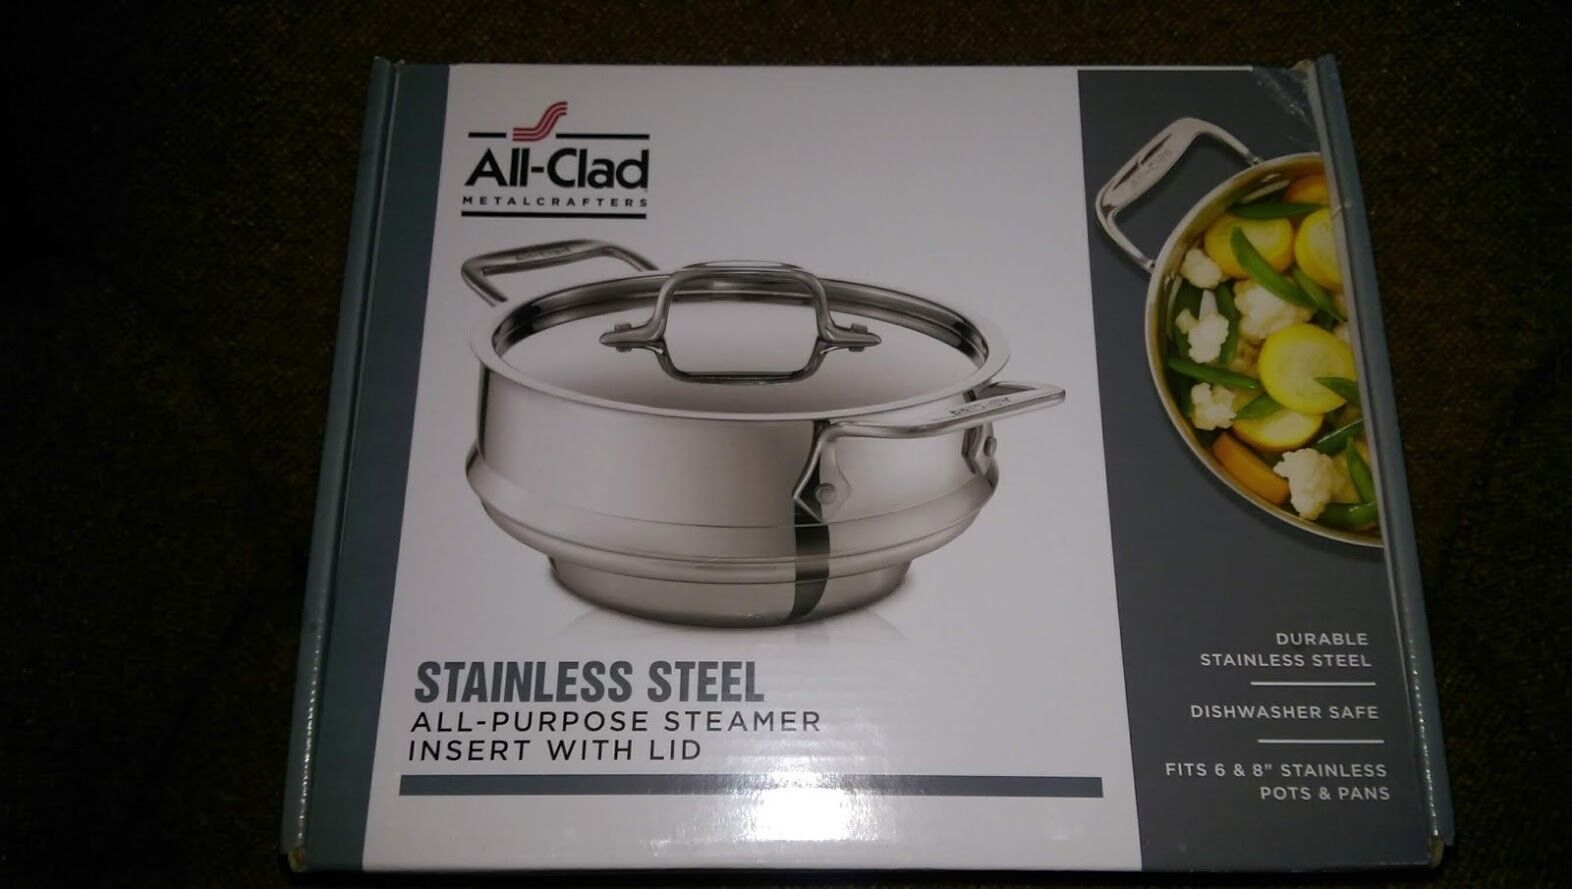 All-Clad Stainless 3 qt All-Purpose Steamer Insert